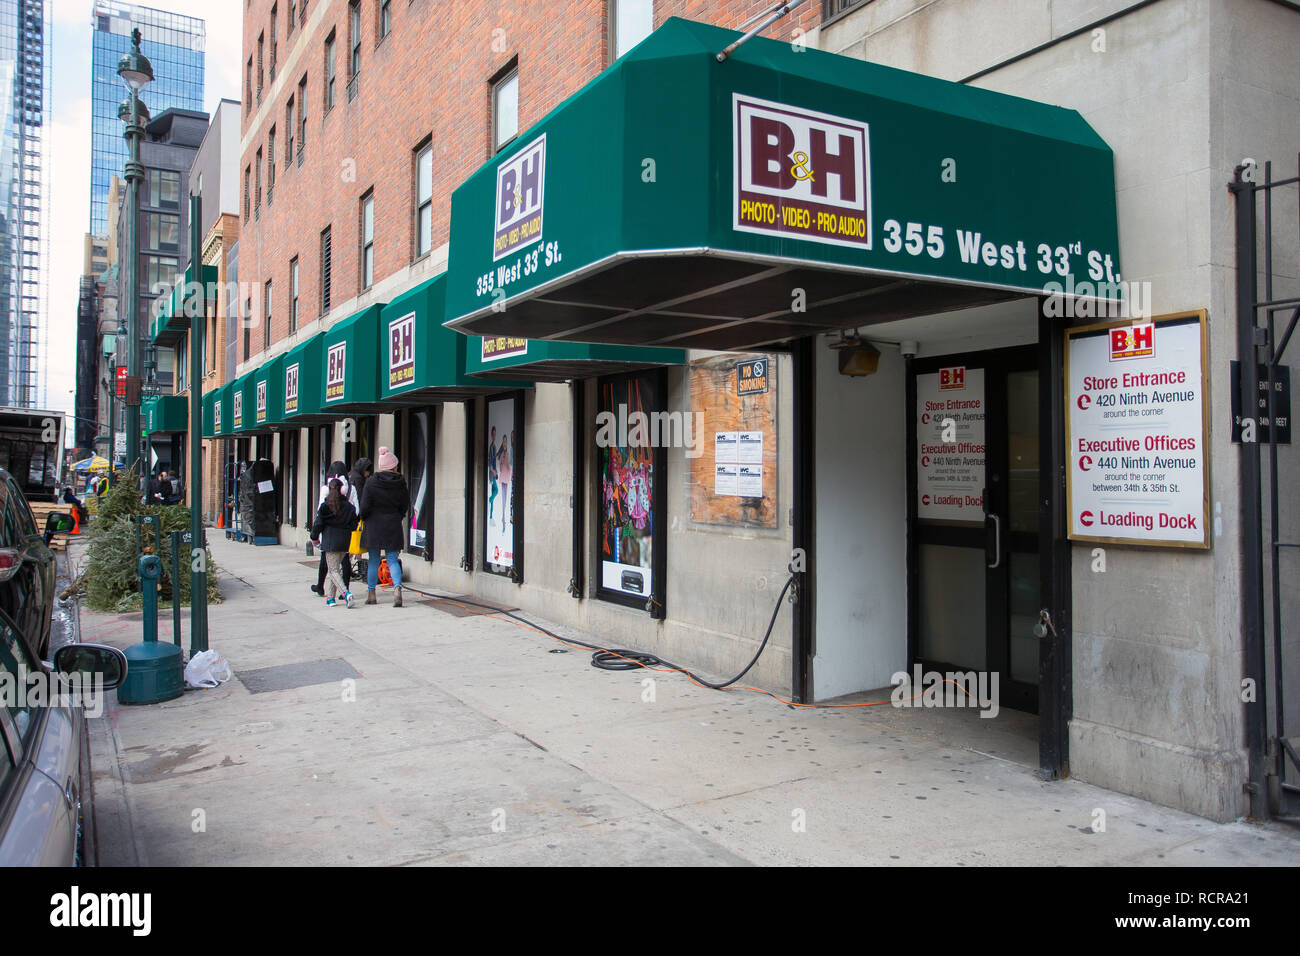 B&h Photo Store Stock Photos & B&h Photo Store Stock Images